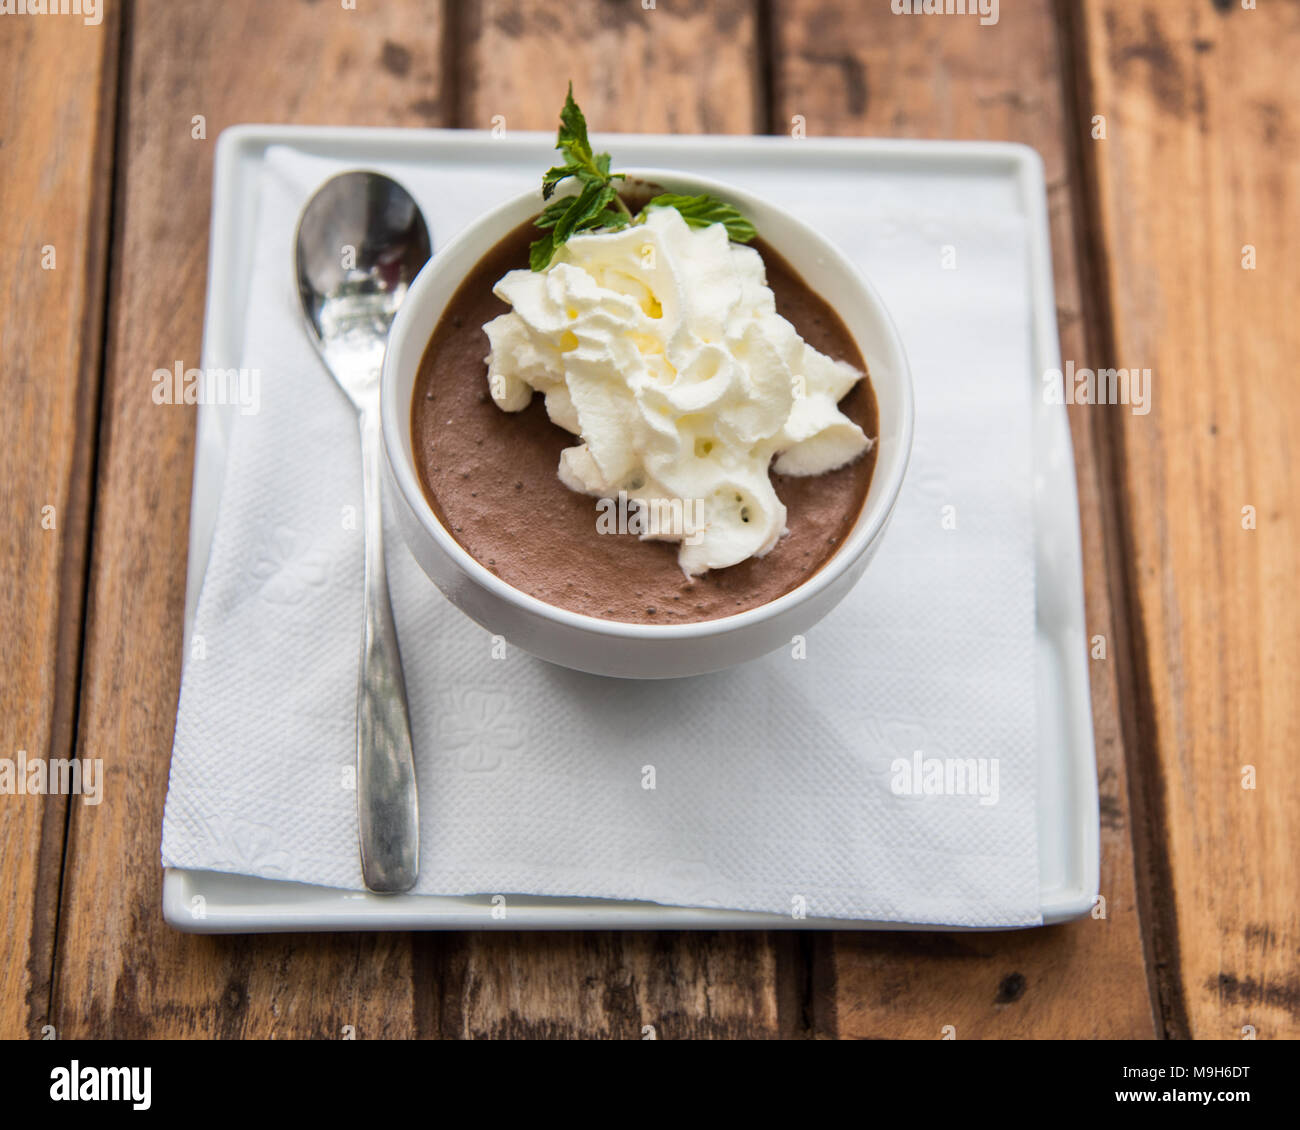 A bowl of brown chocolate mousse, topped with whipped cream sit on brown wood table. - Stock Image